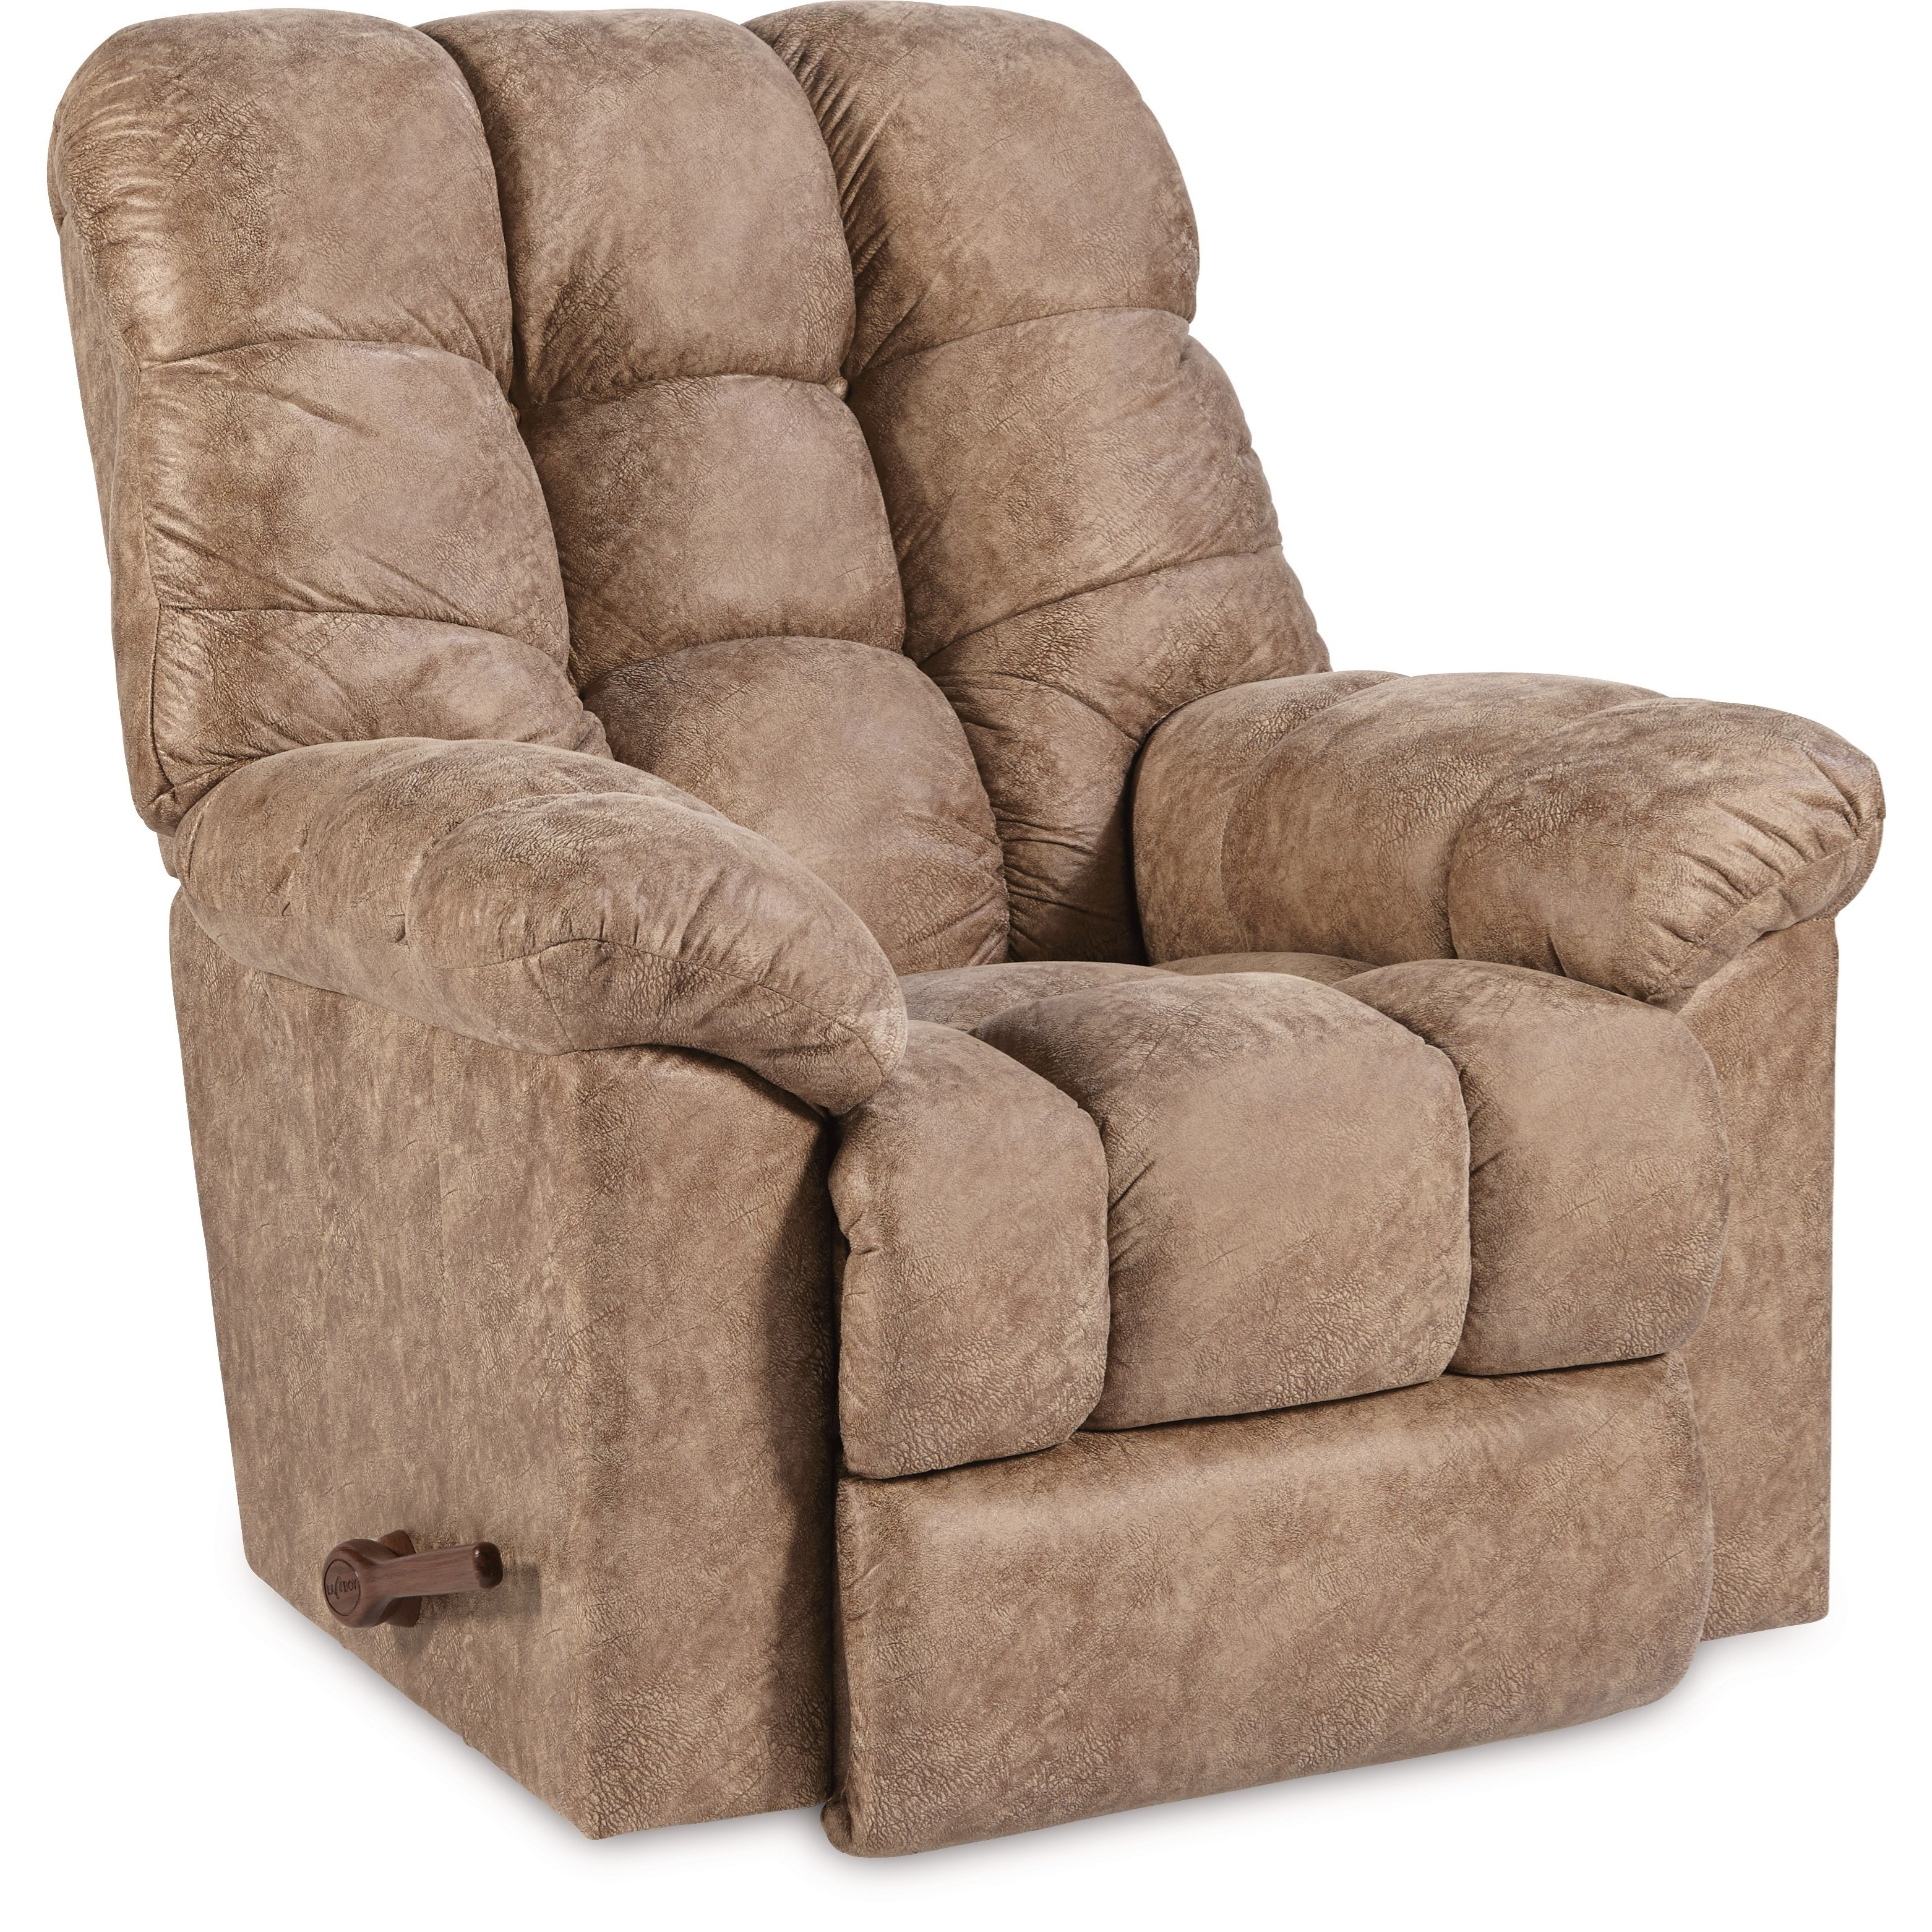 Gibson Rocking Recliner by La-Z-Boy at Houston's Yuma Furniture